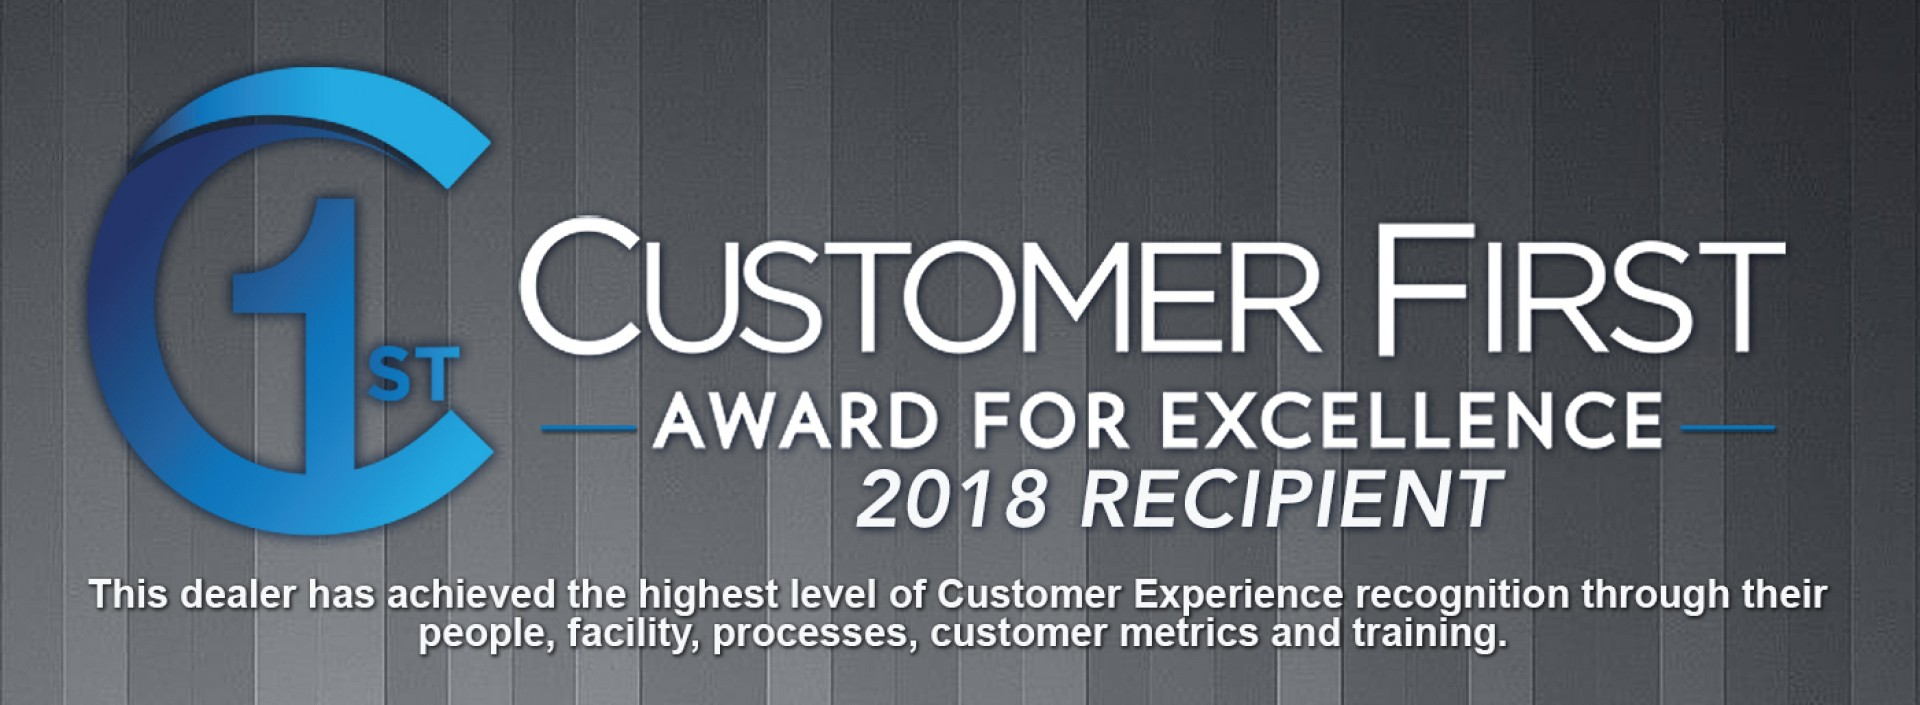 Customer First Award For Excellence 2018